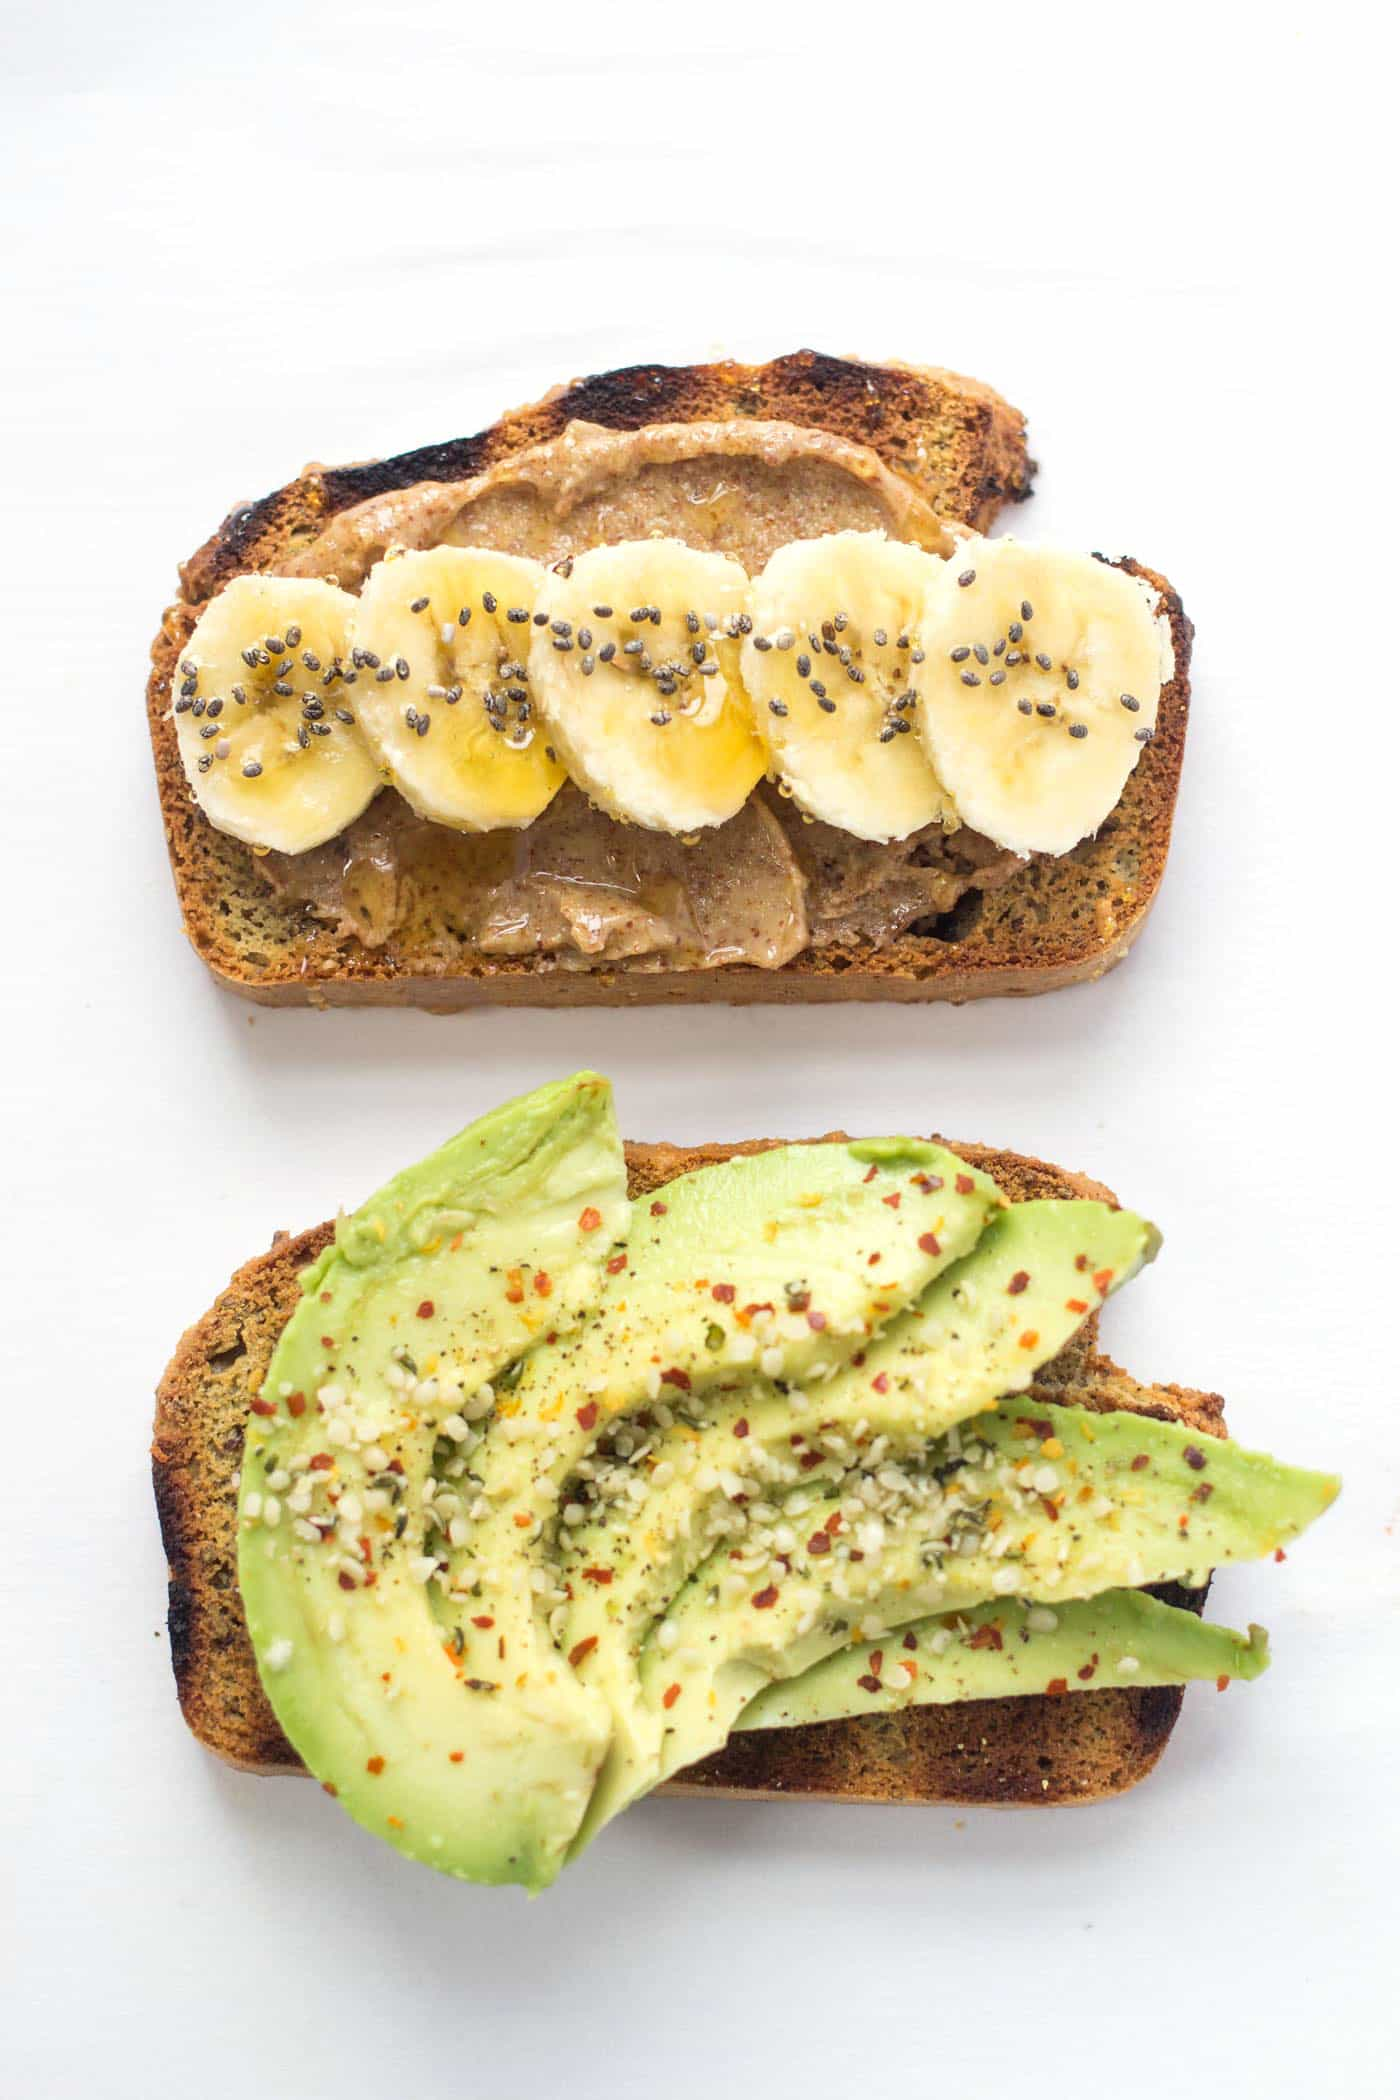 QUINOA ALMOND FLOUR BREAD makes the best breakfast toasts -- top: peanut butter + banana, bottom: sliced avocado and pepper flakes